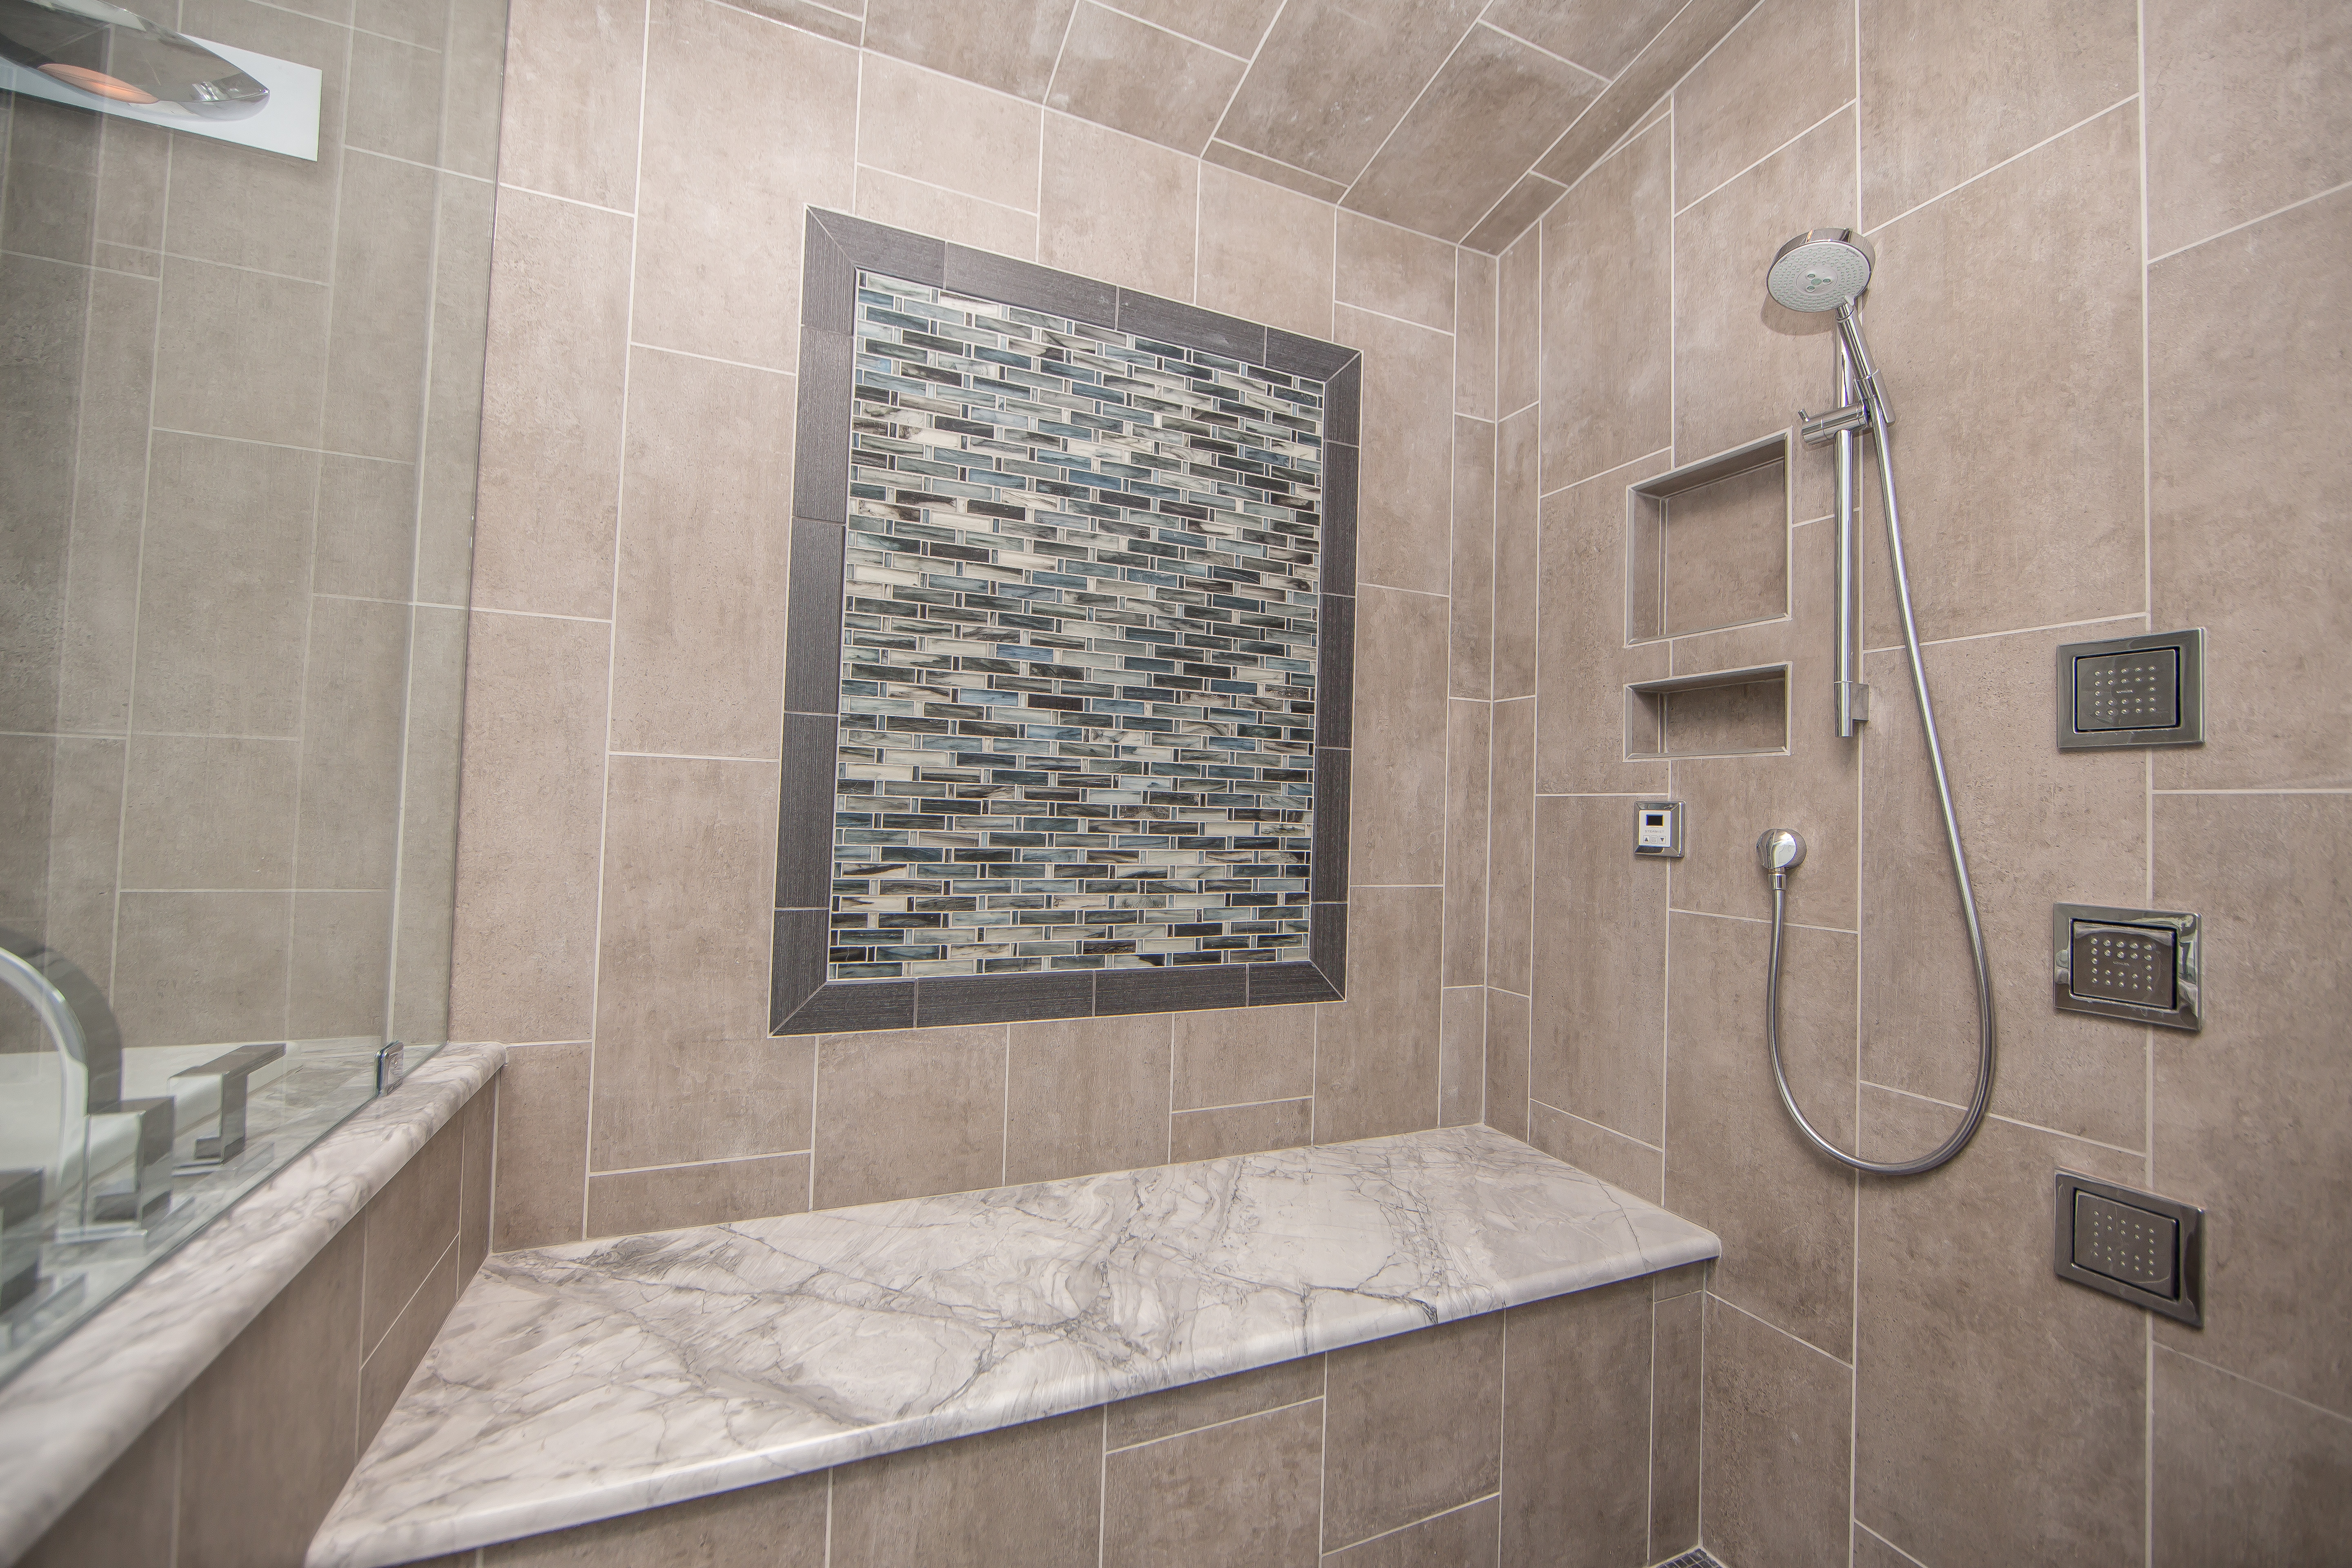 The Mural Border Repeats The Glazed, Porcelain Tile From The Flashback  Series And Was Also Cut On Site From 12 X 24 Inch Tile To 3 X 24 Inch  Pieces.